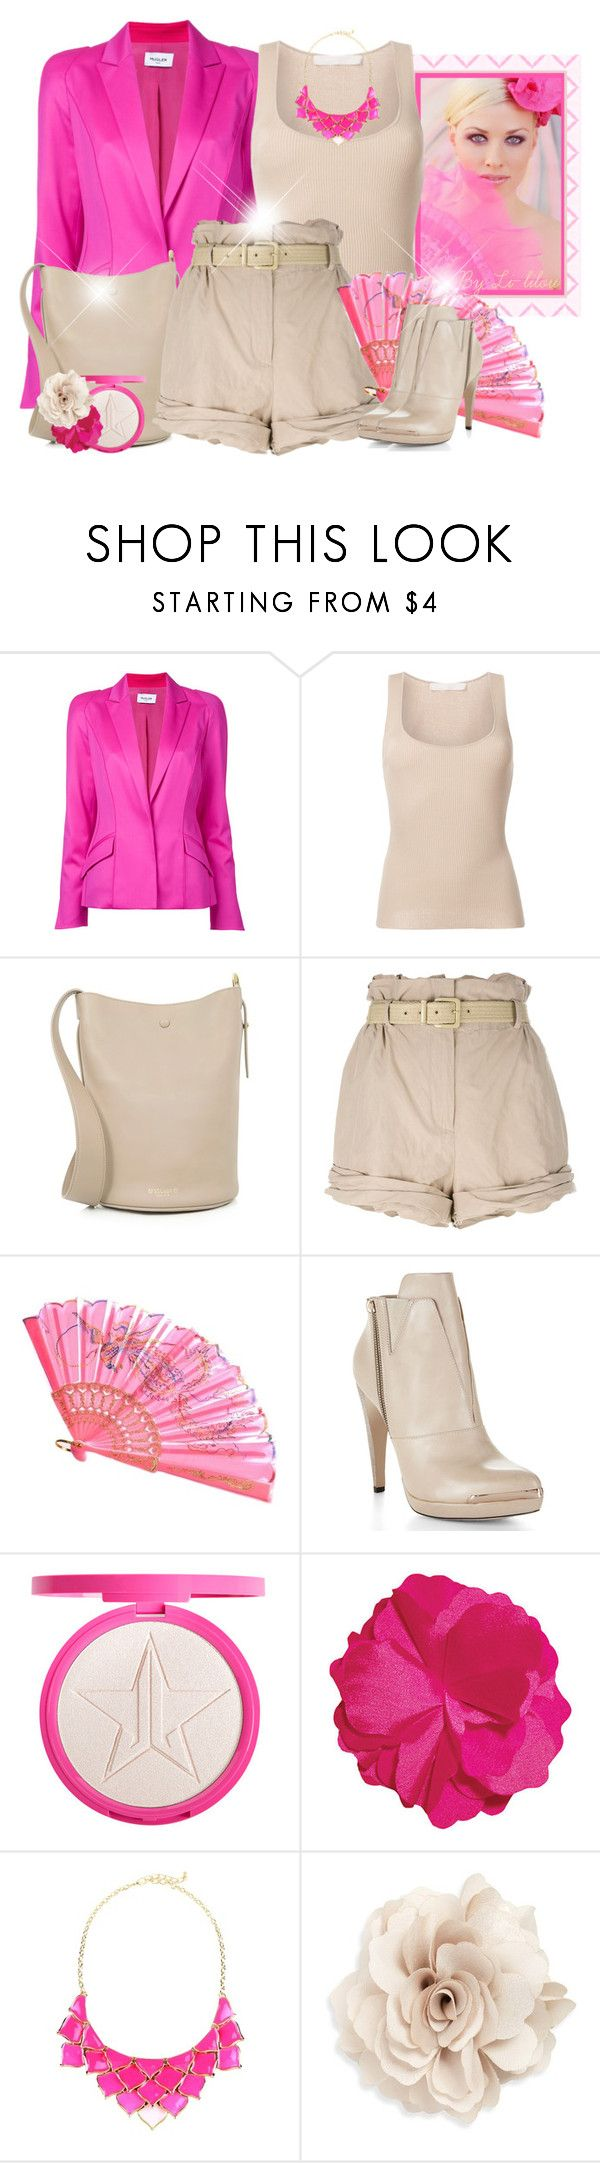 """""""~Un peu de pep's!~"""" by li-lilou ❤ liked on Polyvore featuring Thierry Mugler, Dion Lee, 10 Crosby Derek Lam, Moschino, Hervé Léger, George J. Love and Cara"""